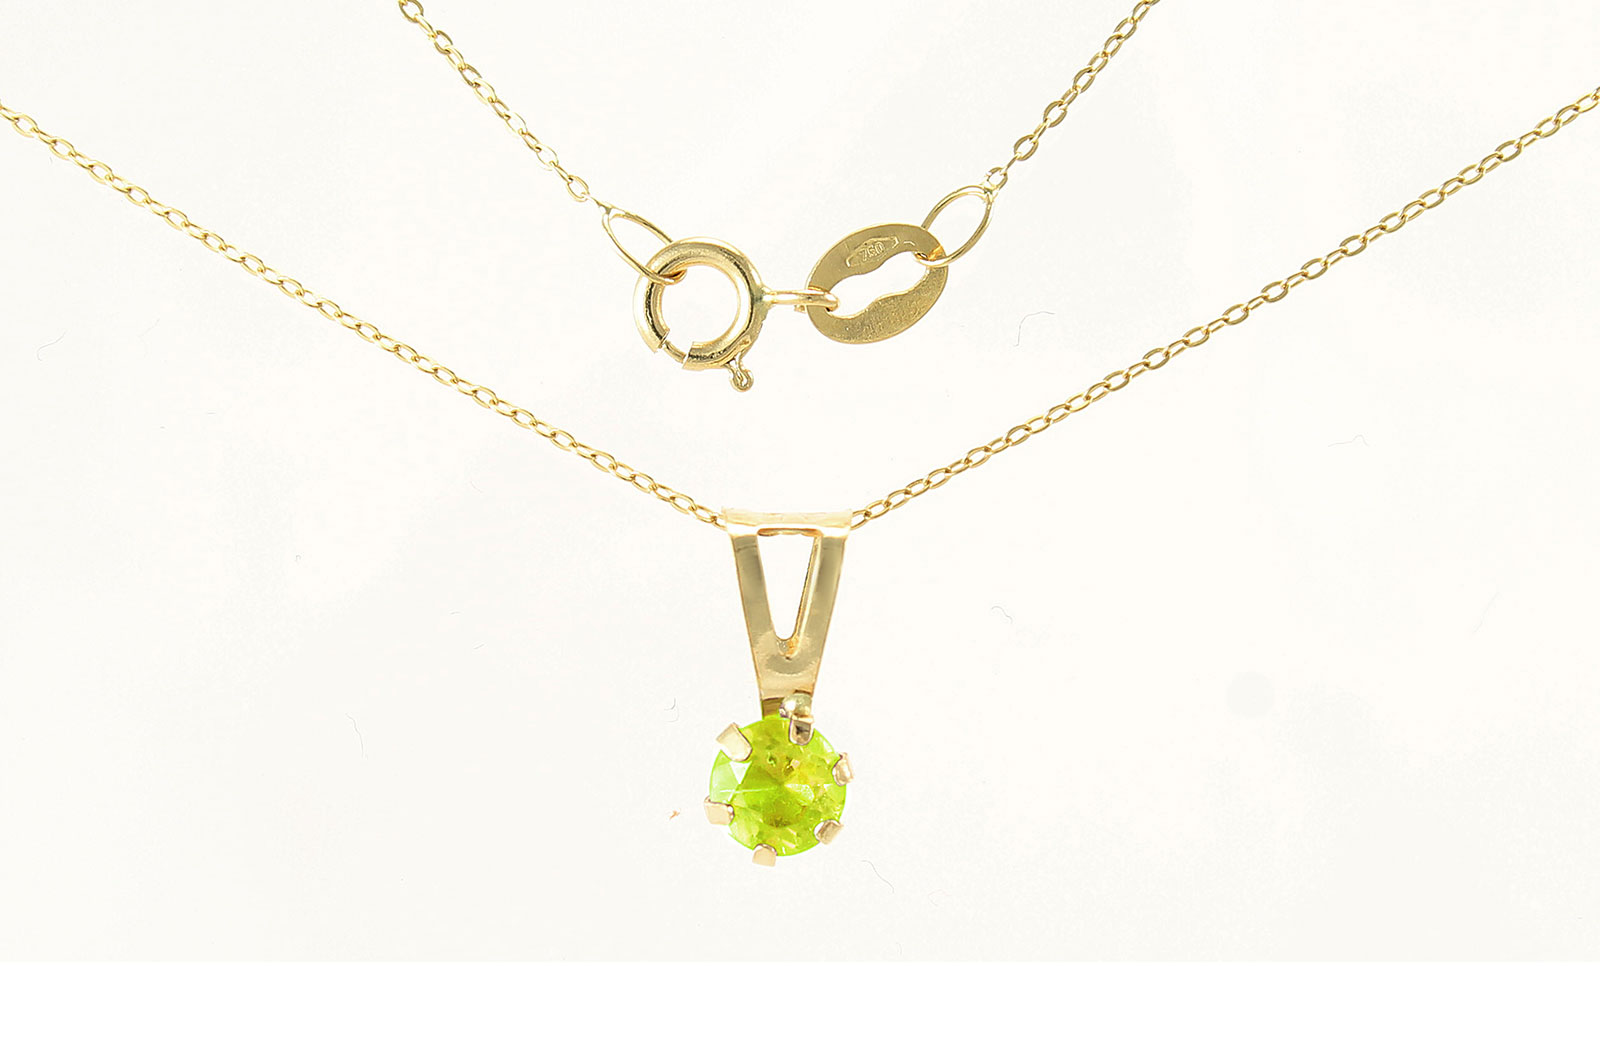 VP Jewels: 4mm Genuine Peridot Solitaire Pendant + Chain